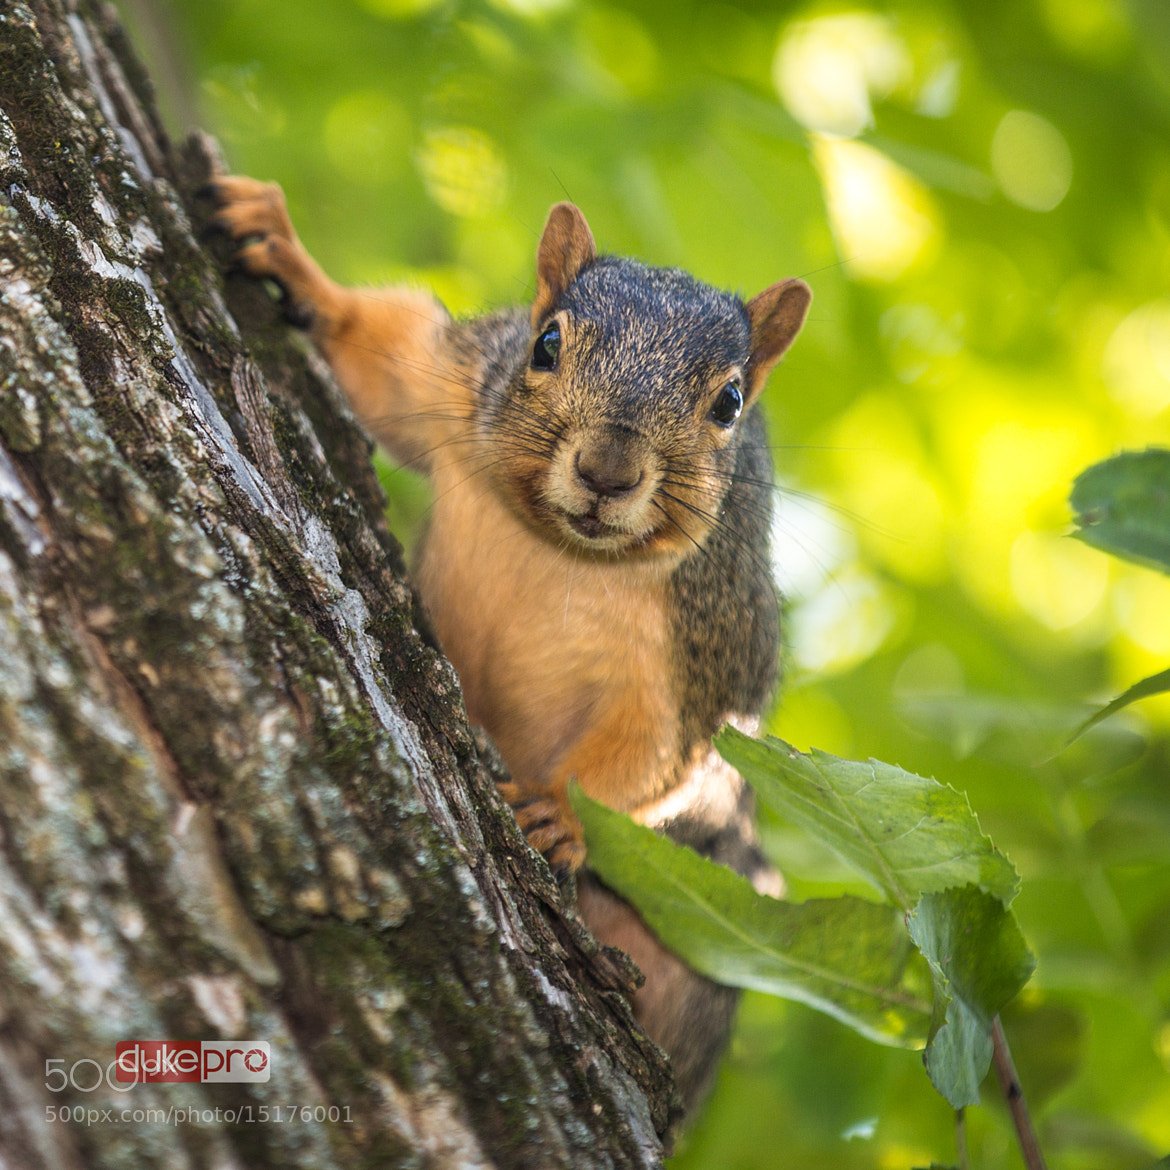 Photograph Squirrel On The Tree  by DUKEGRAPHY STUDIO on 500px